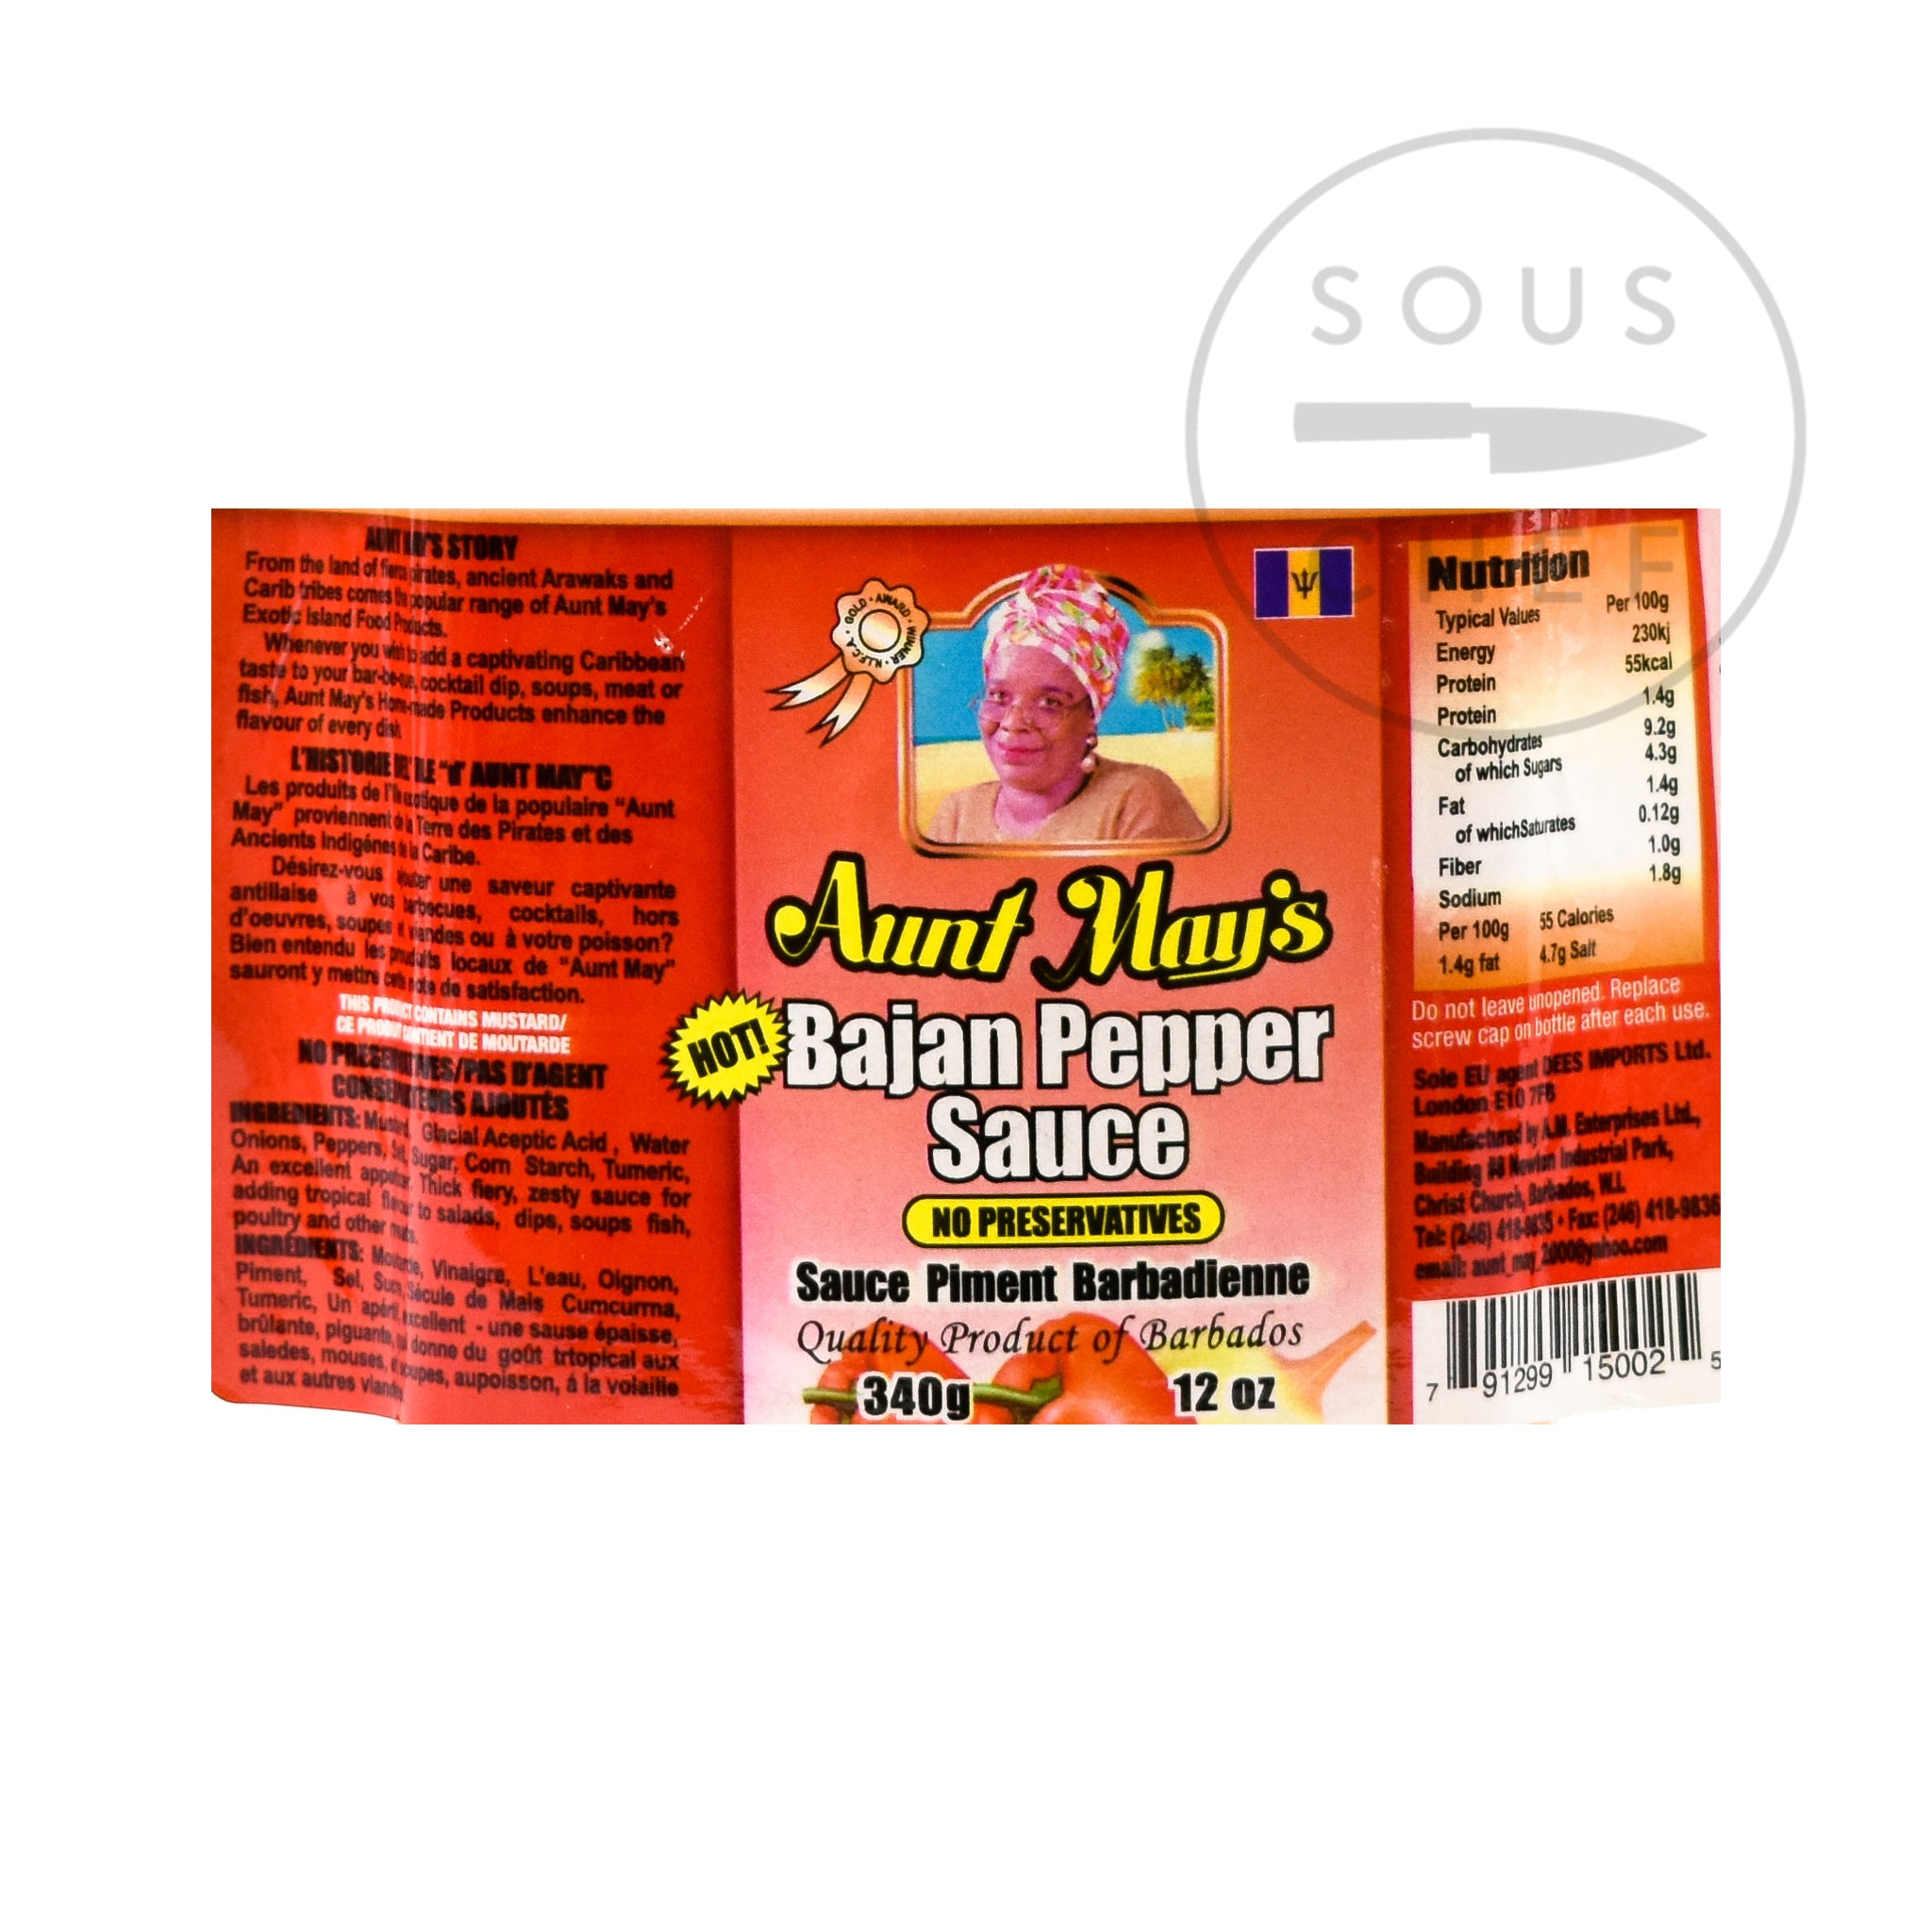 Aunt May's Bajan Pepper Sauce 340g nutritional information ingredients